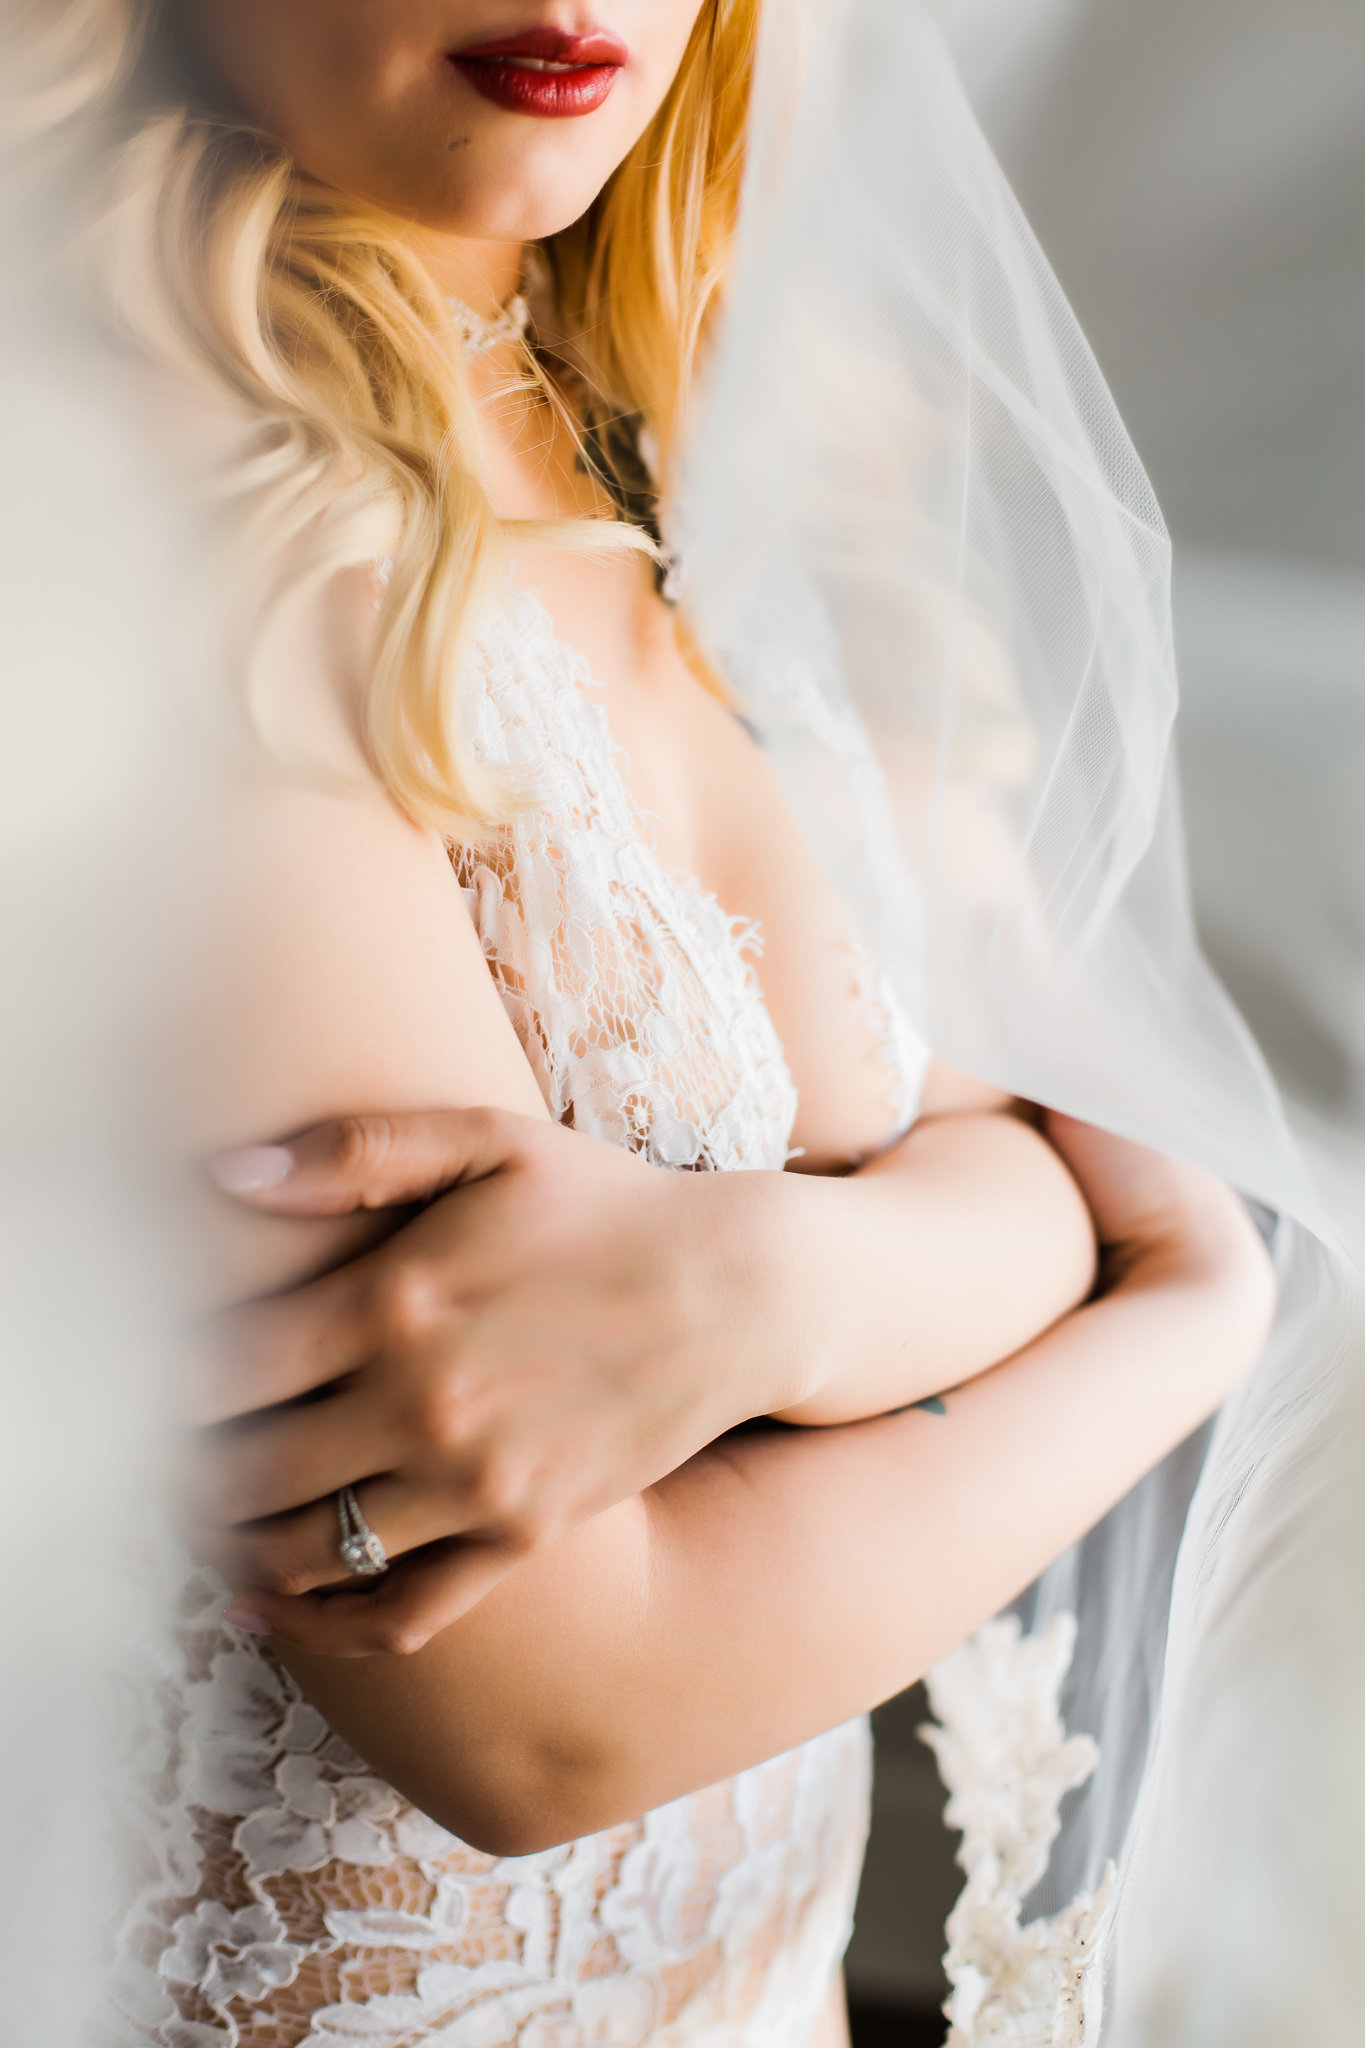 Bride wearing lingerie and a wedding veil